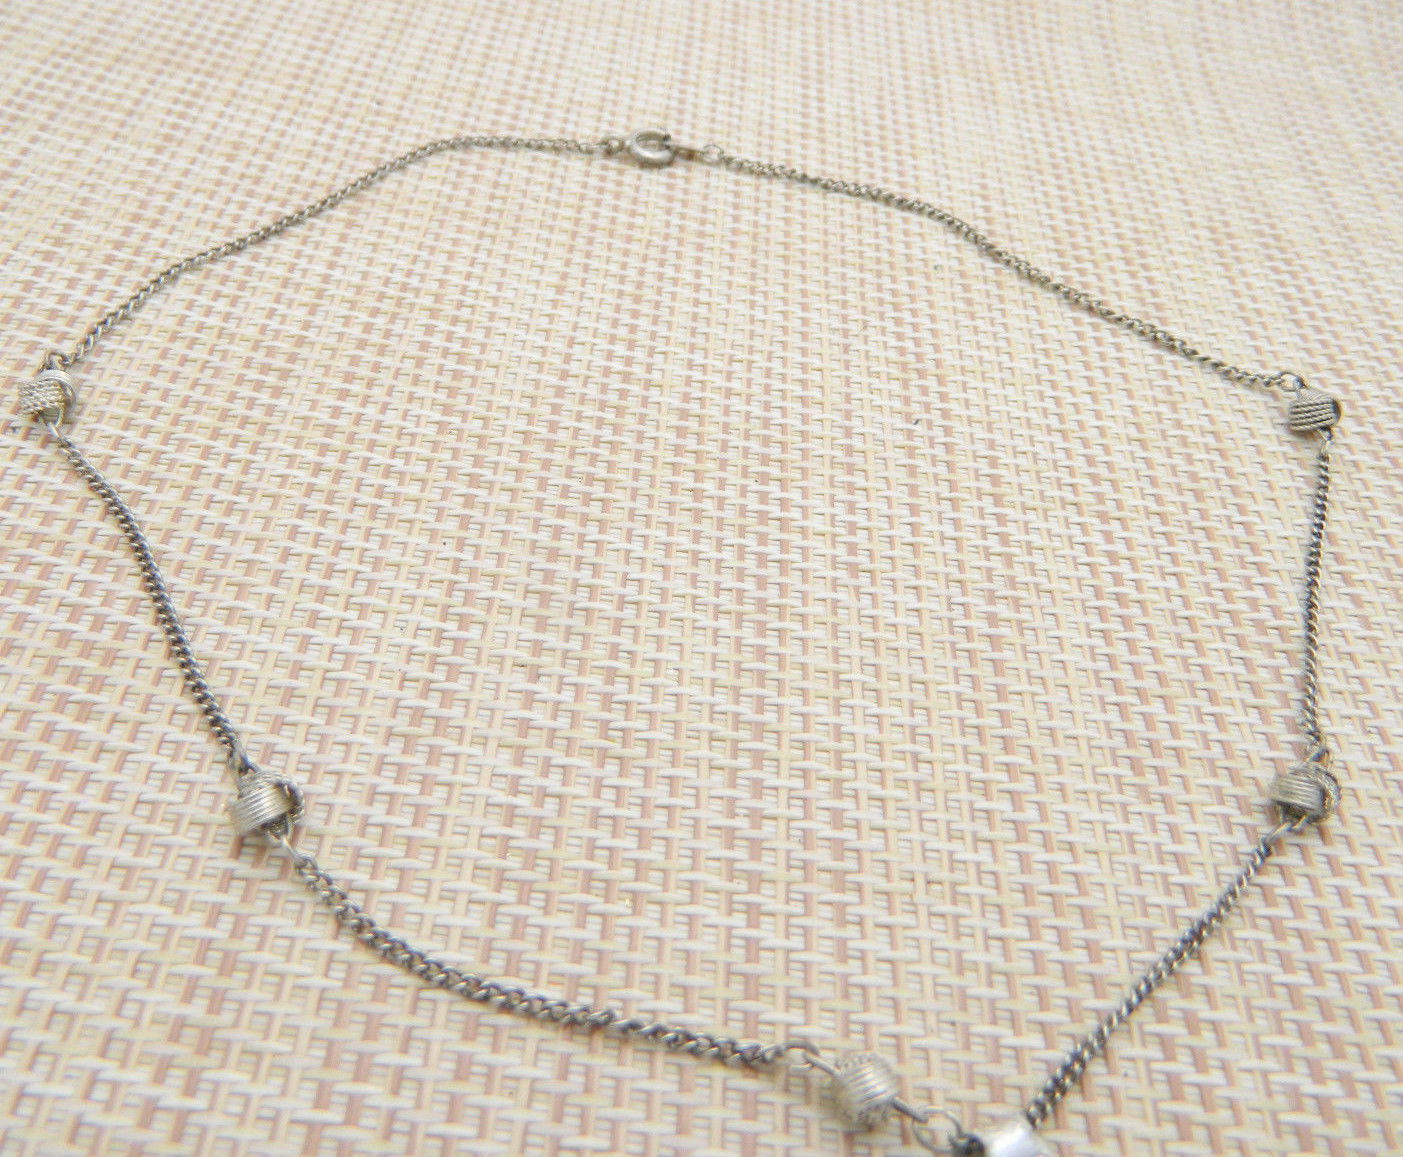 Silver Plated Fashion Love Knot Choker Necklace